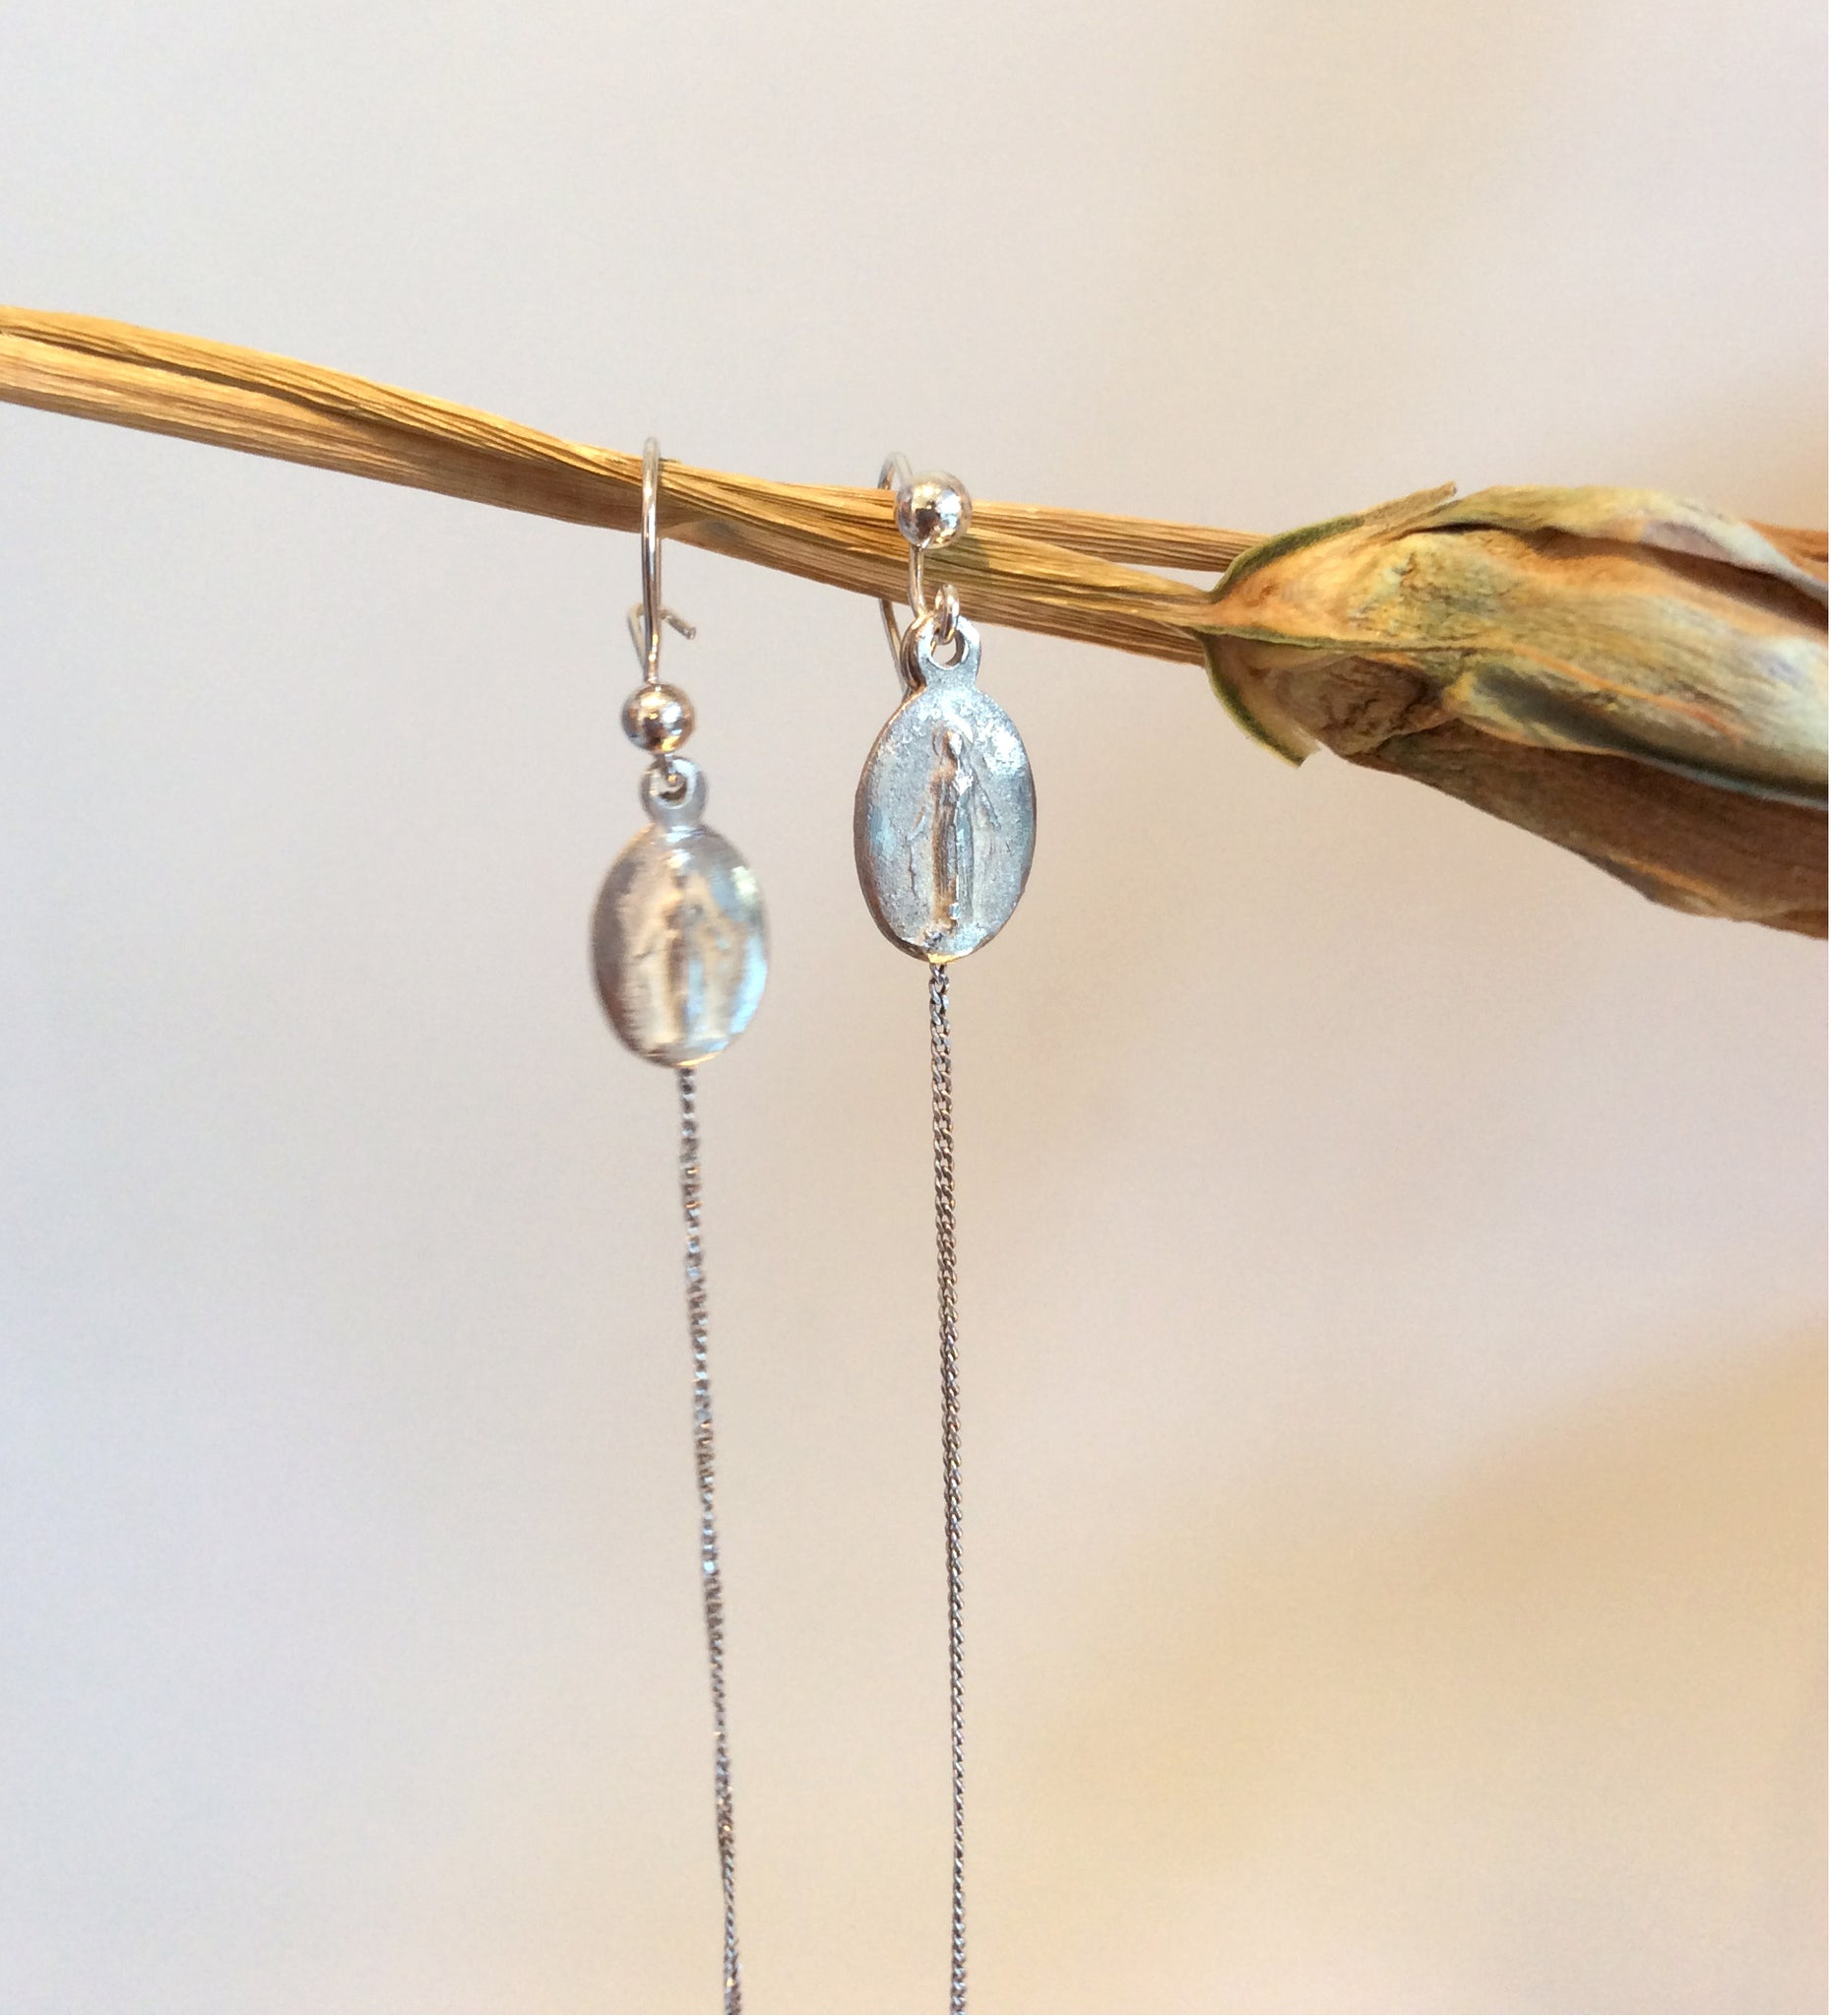 ORNAMENT & CRIME 'MARIA' EARRINGS W/ LONG CHAIN